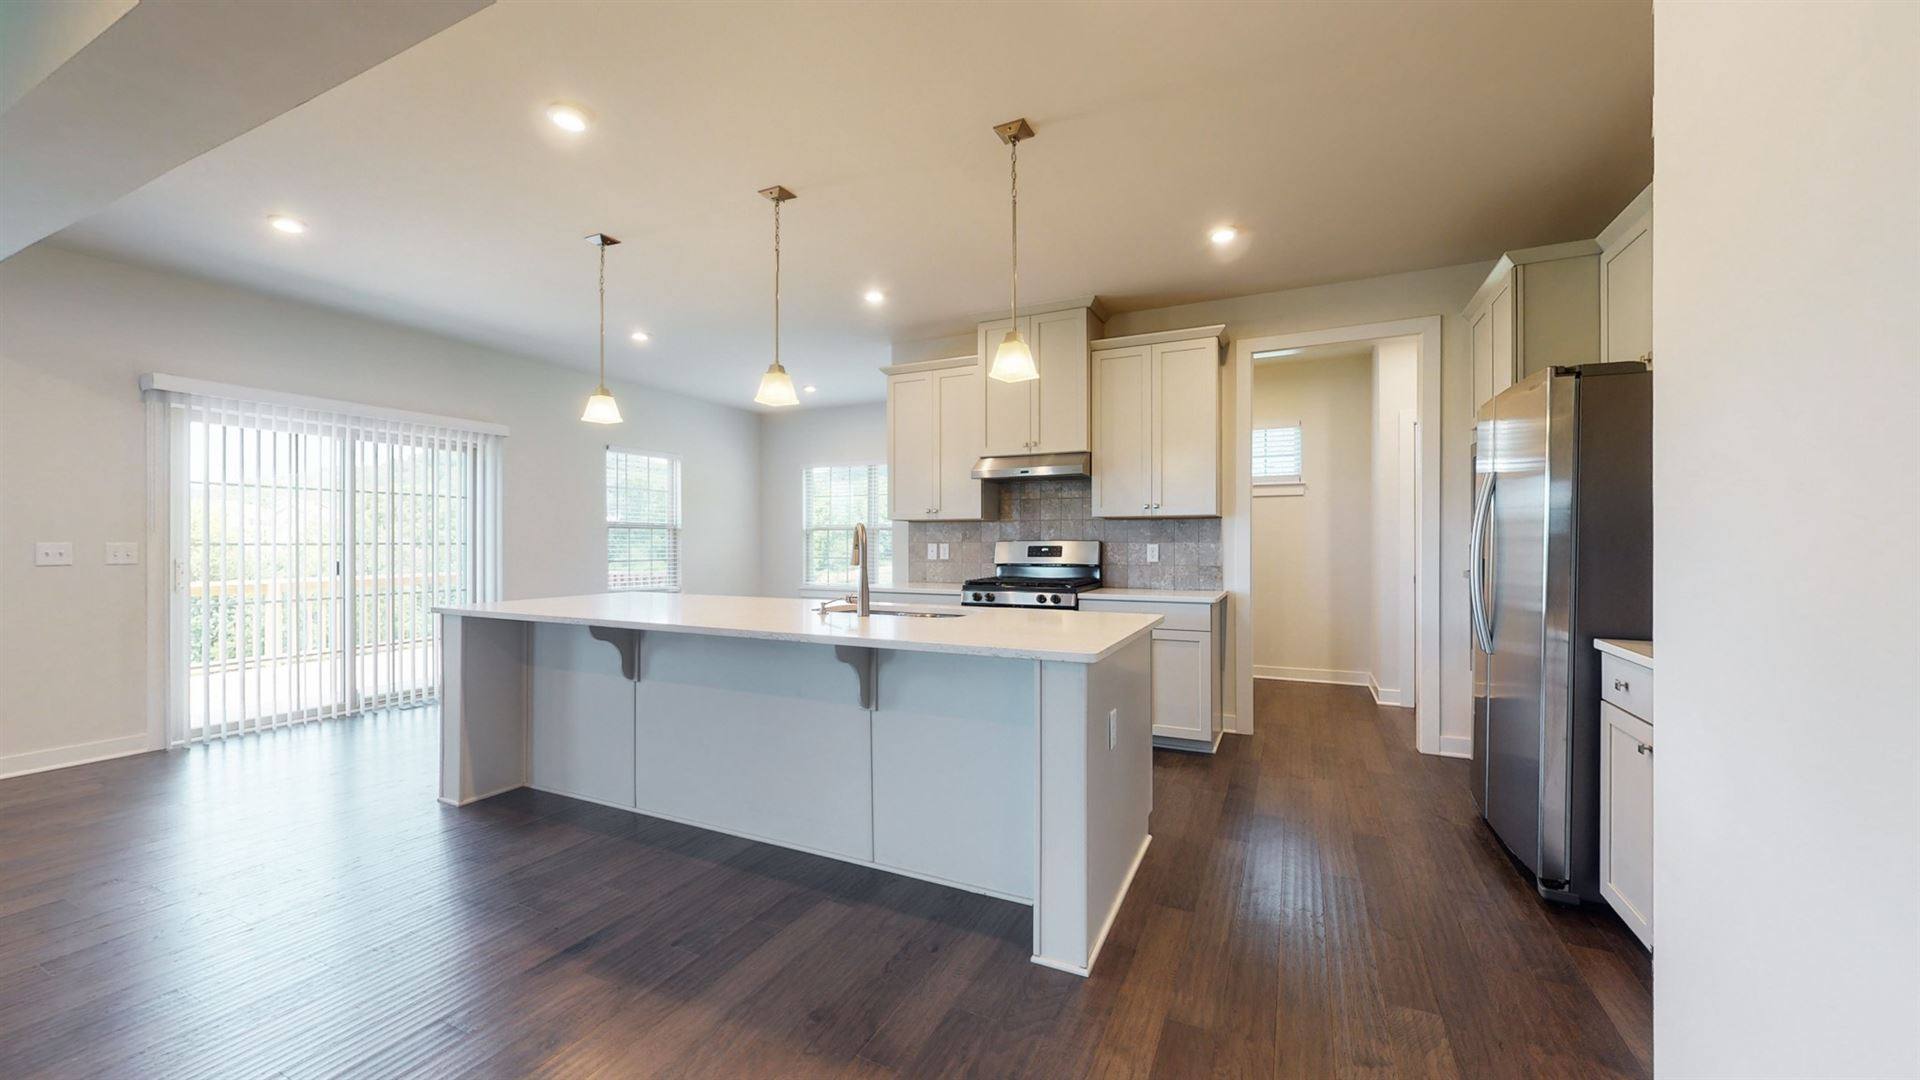 Photo of 9228 Stepping Stone Dr, Franklin, TN 37067 (MLS # 2263890)